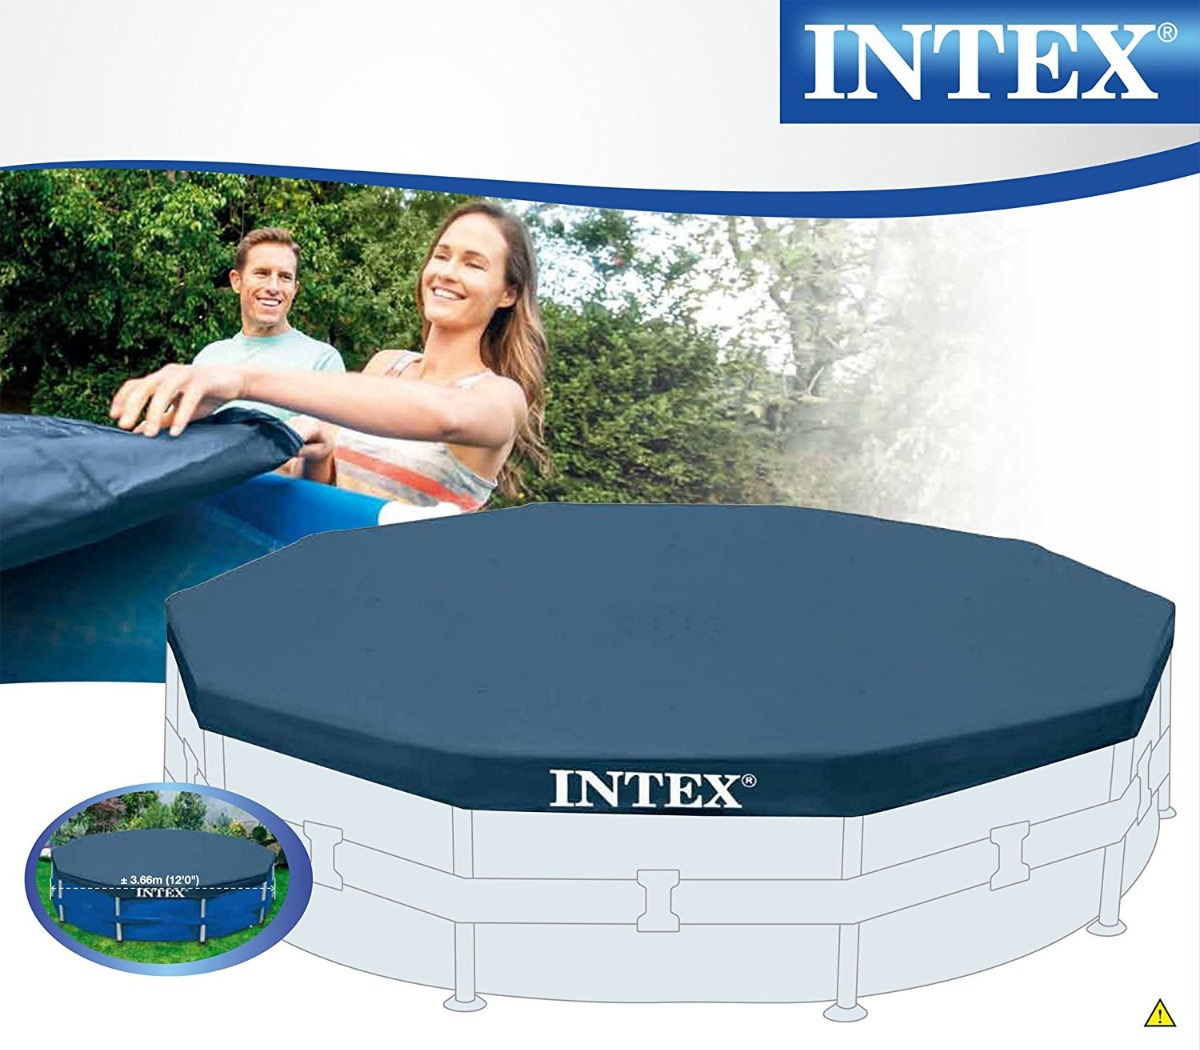 Cobertor Piscina Estructural Intex 3.66 destiné Piscine Intex 3.66